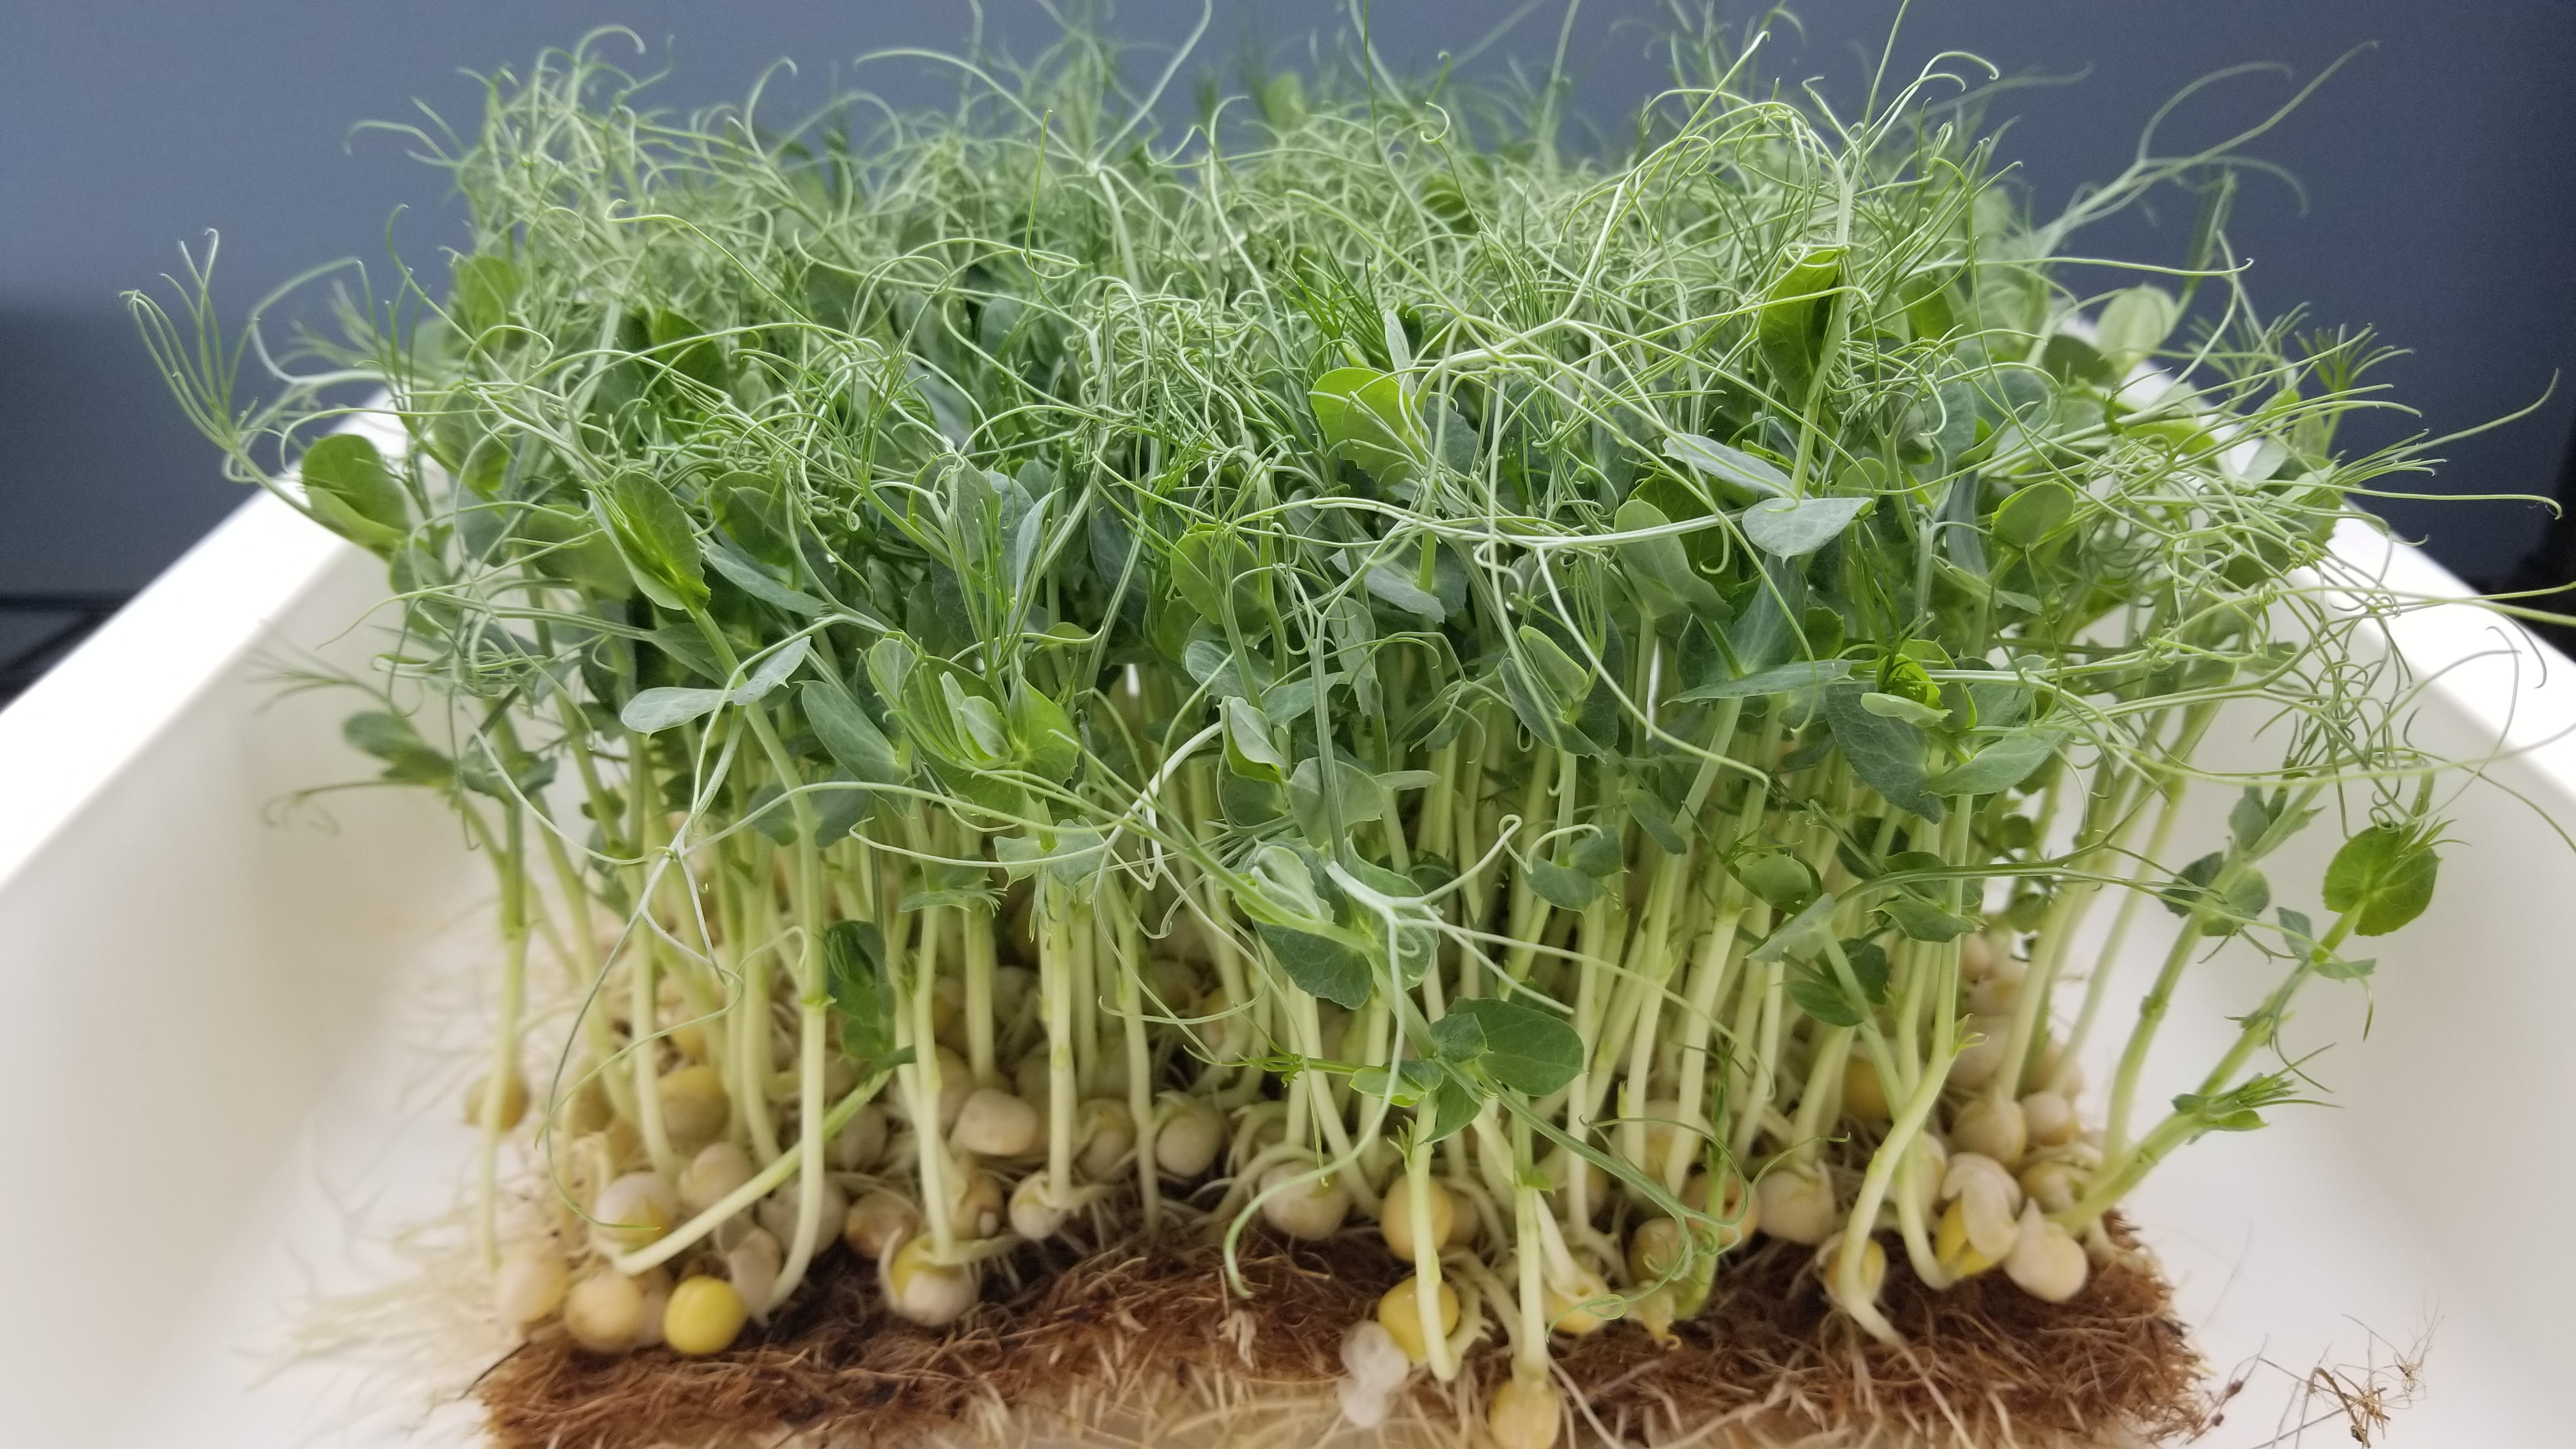 Green Pea Tendril Microgreens - Long Island Microgreens